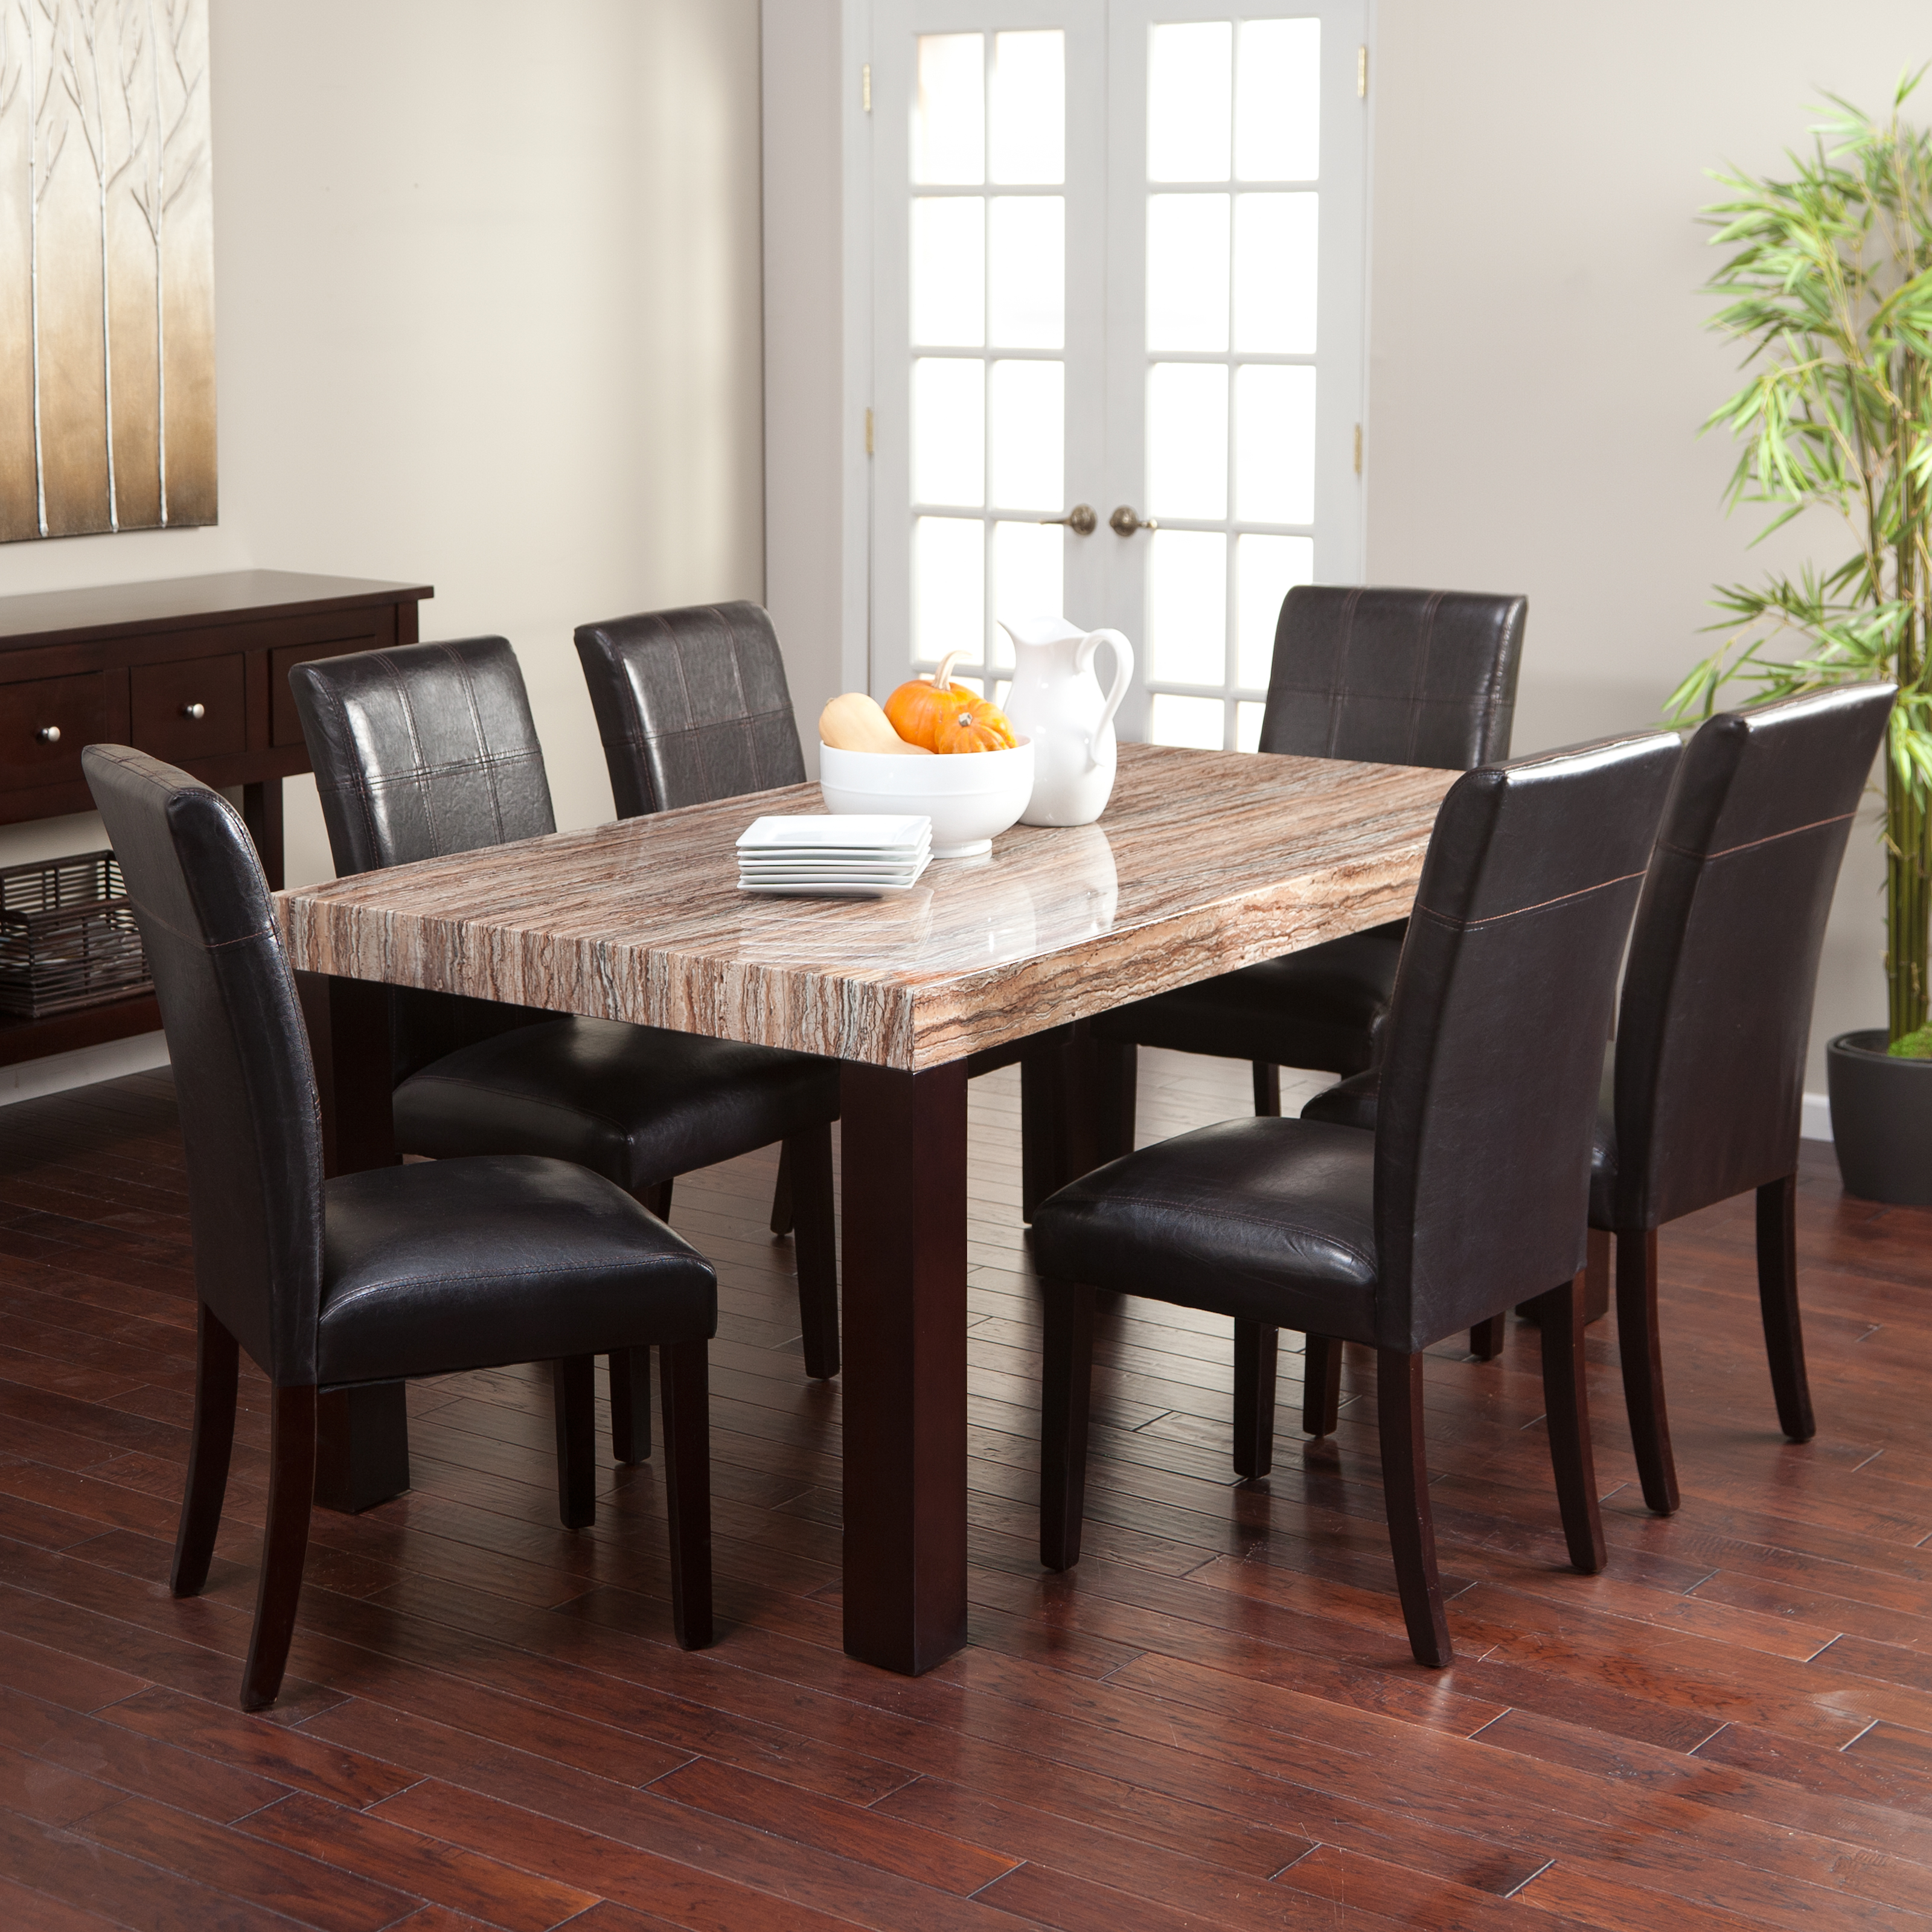 monarchdoublexbackchairswhiteoak kitchen table chairs Home Styles Monarch 7 Piece Dining Table Set with 6 Double X Back Chairs White Oak Dining Table Sets at Hayneedle